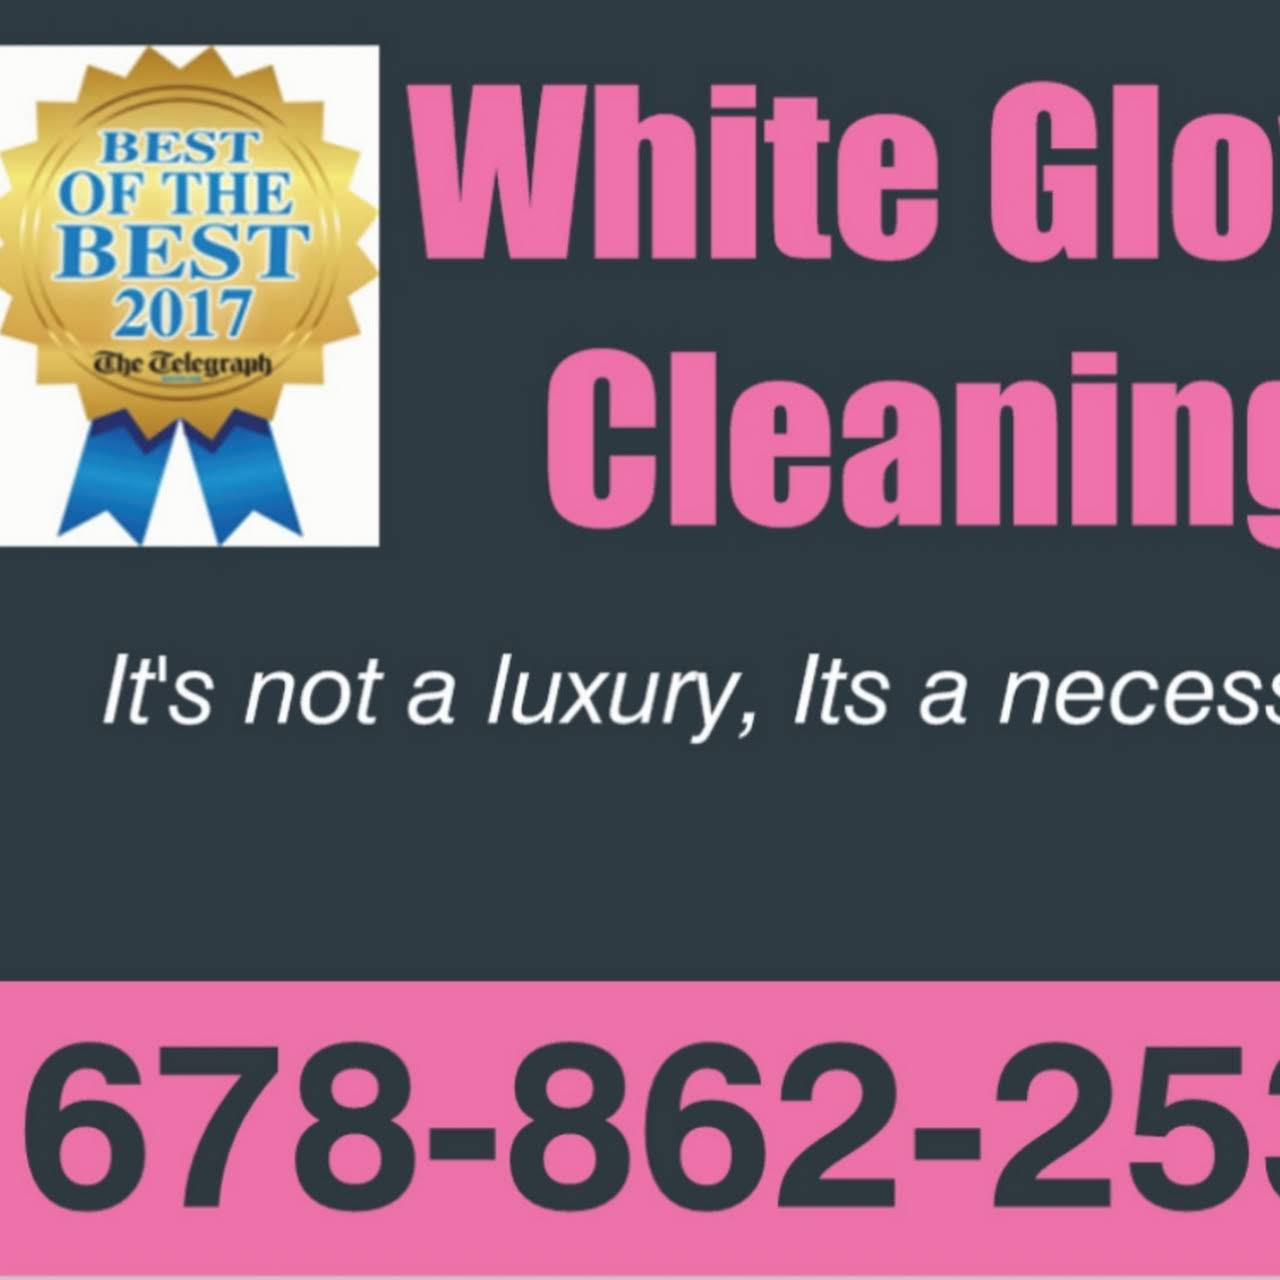 White Glove Cleaning Professional Cleaning Service Serving